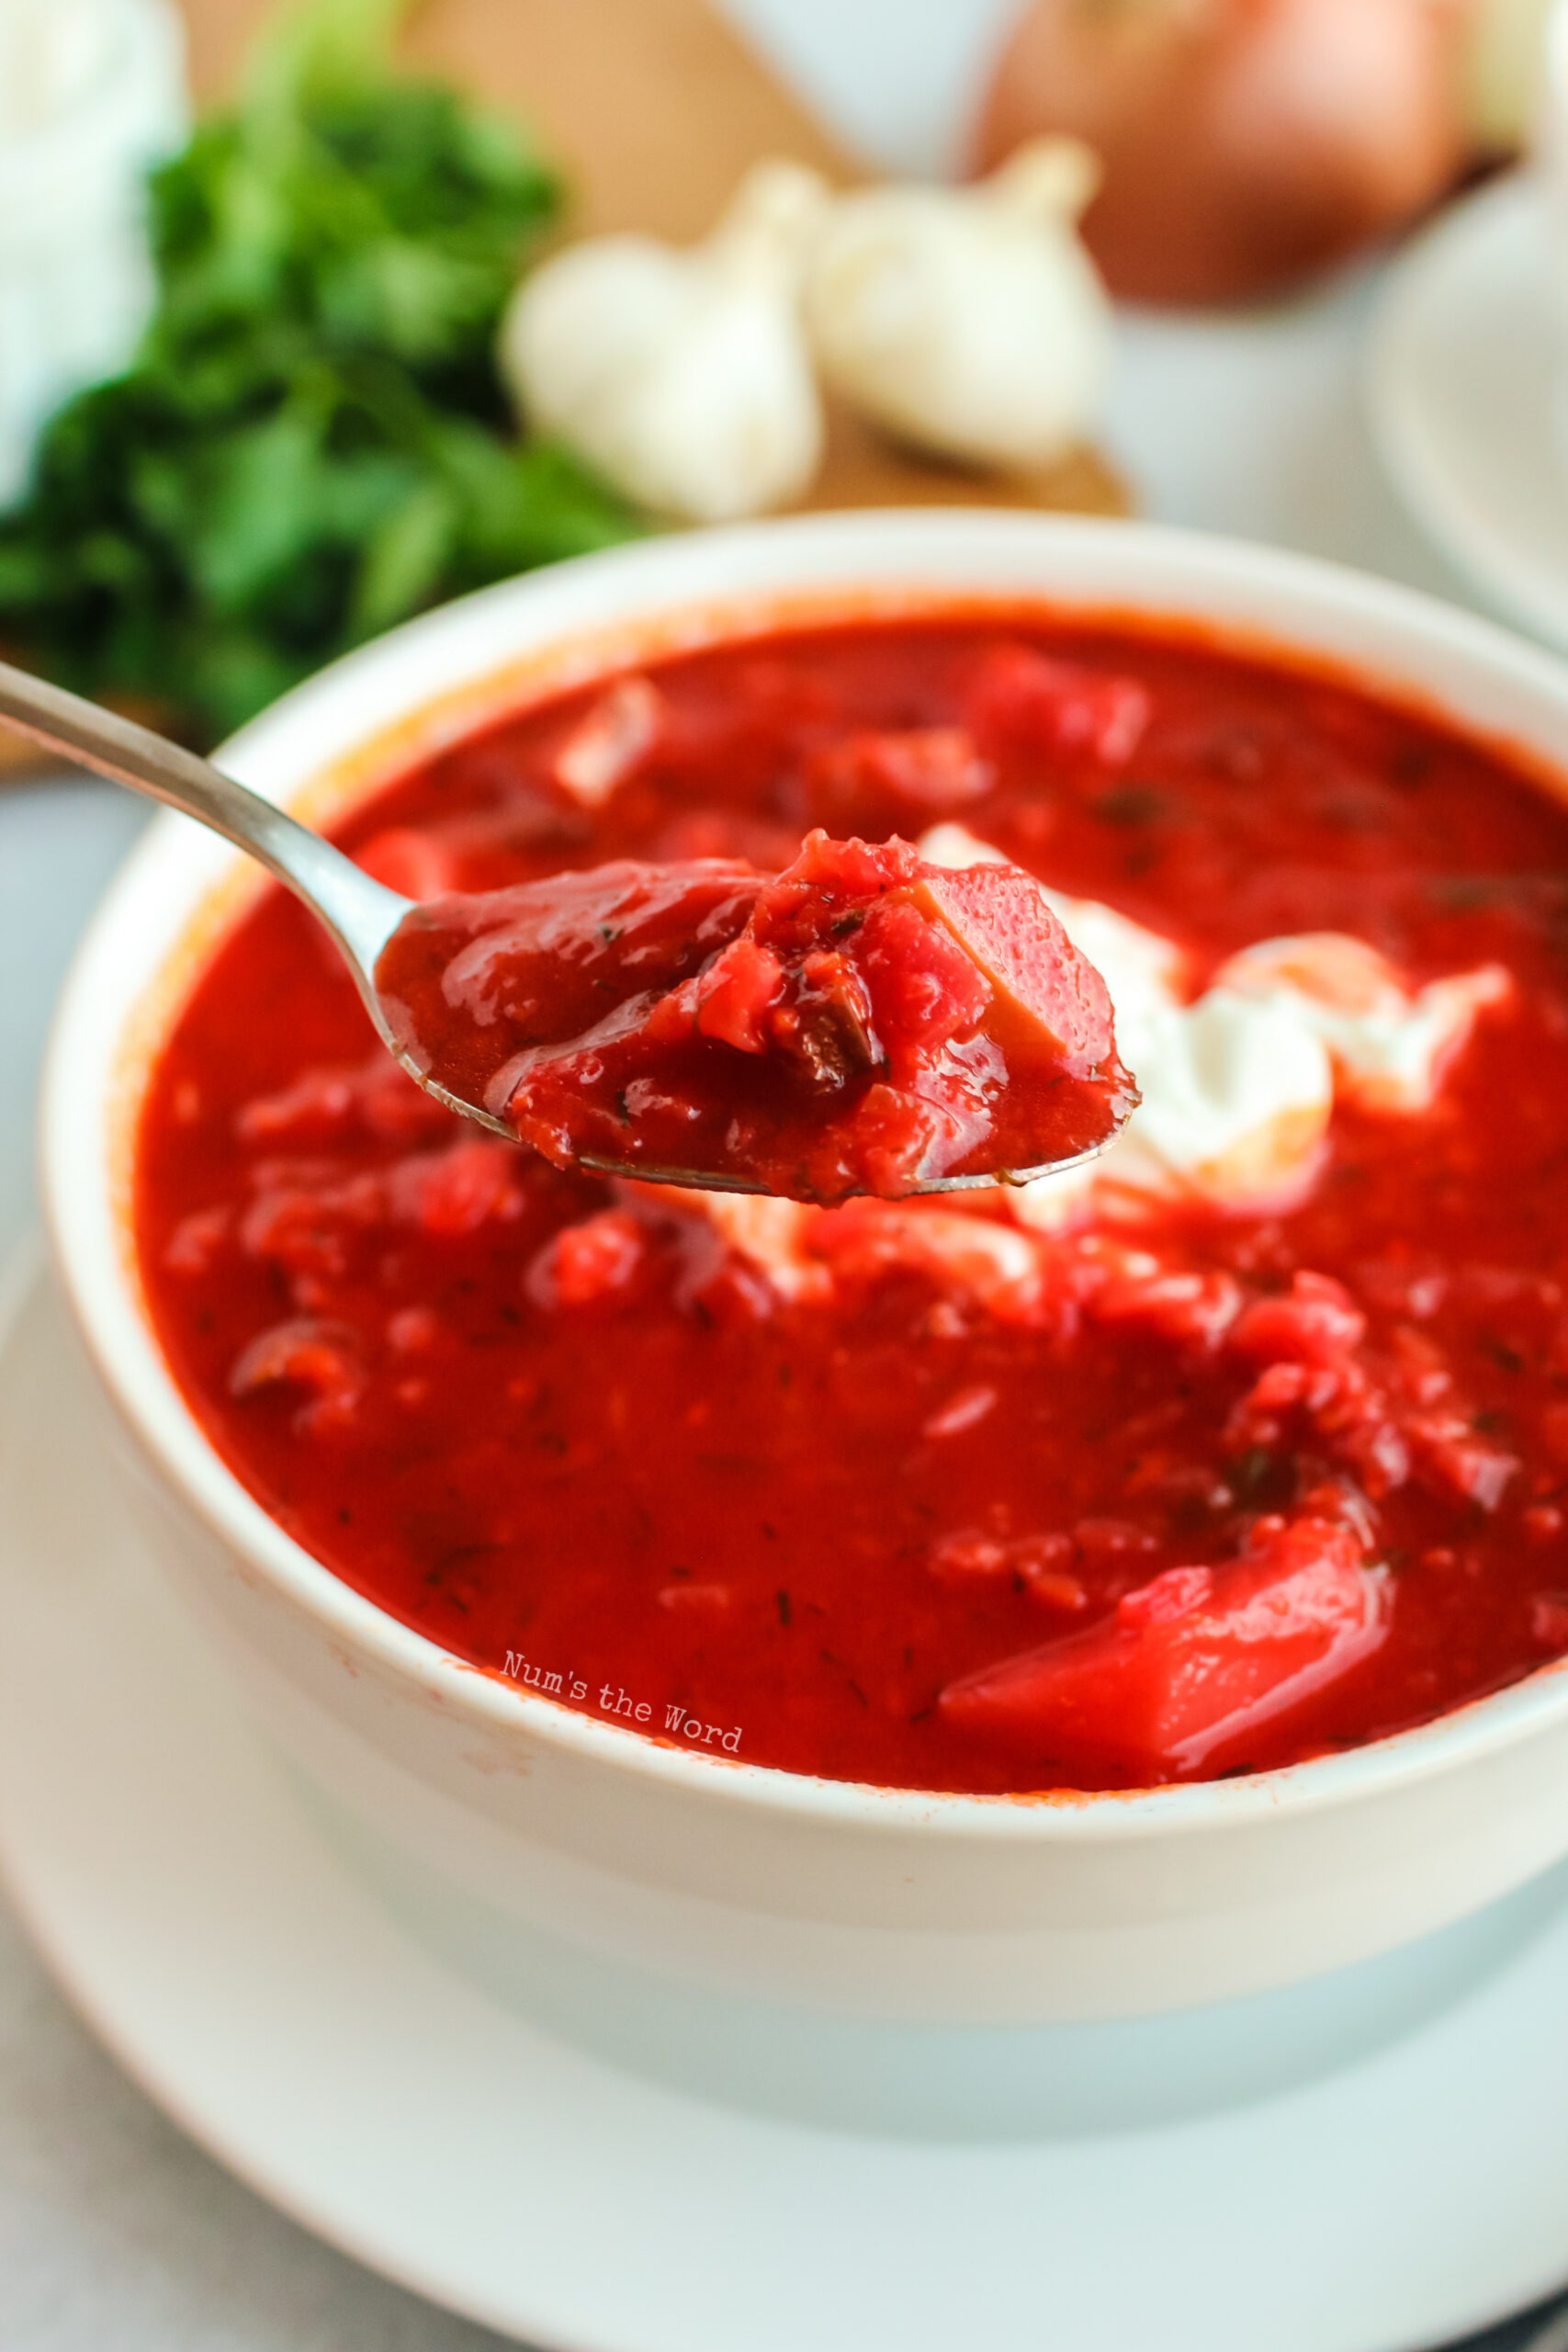 spoon holding up a portion of borscht ready to be eaten.